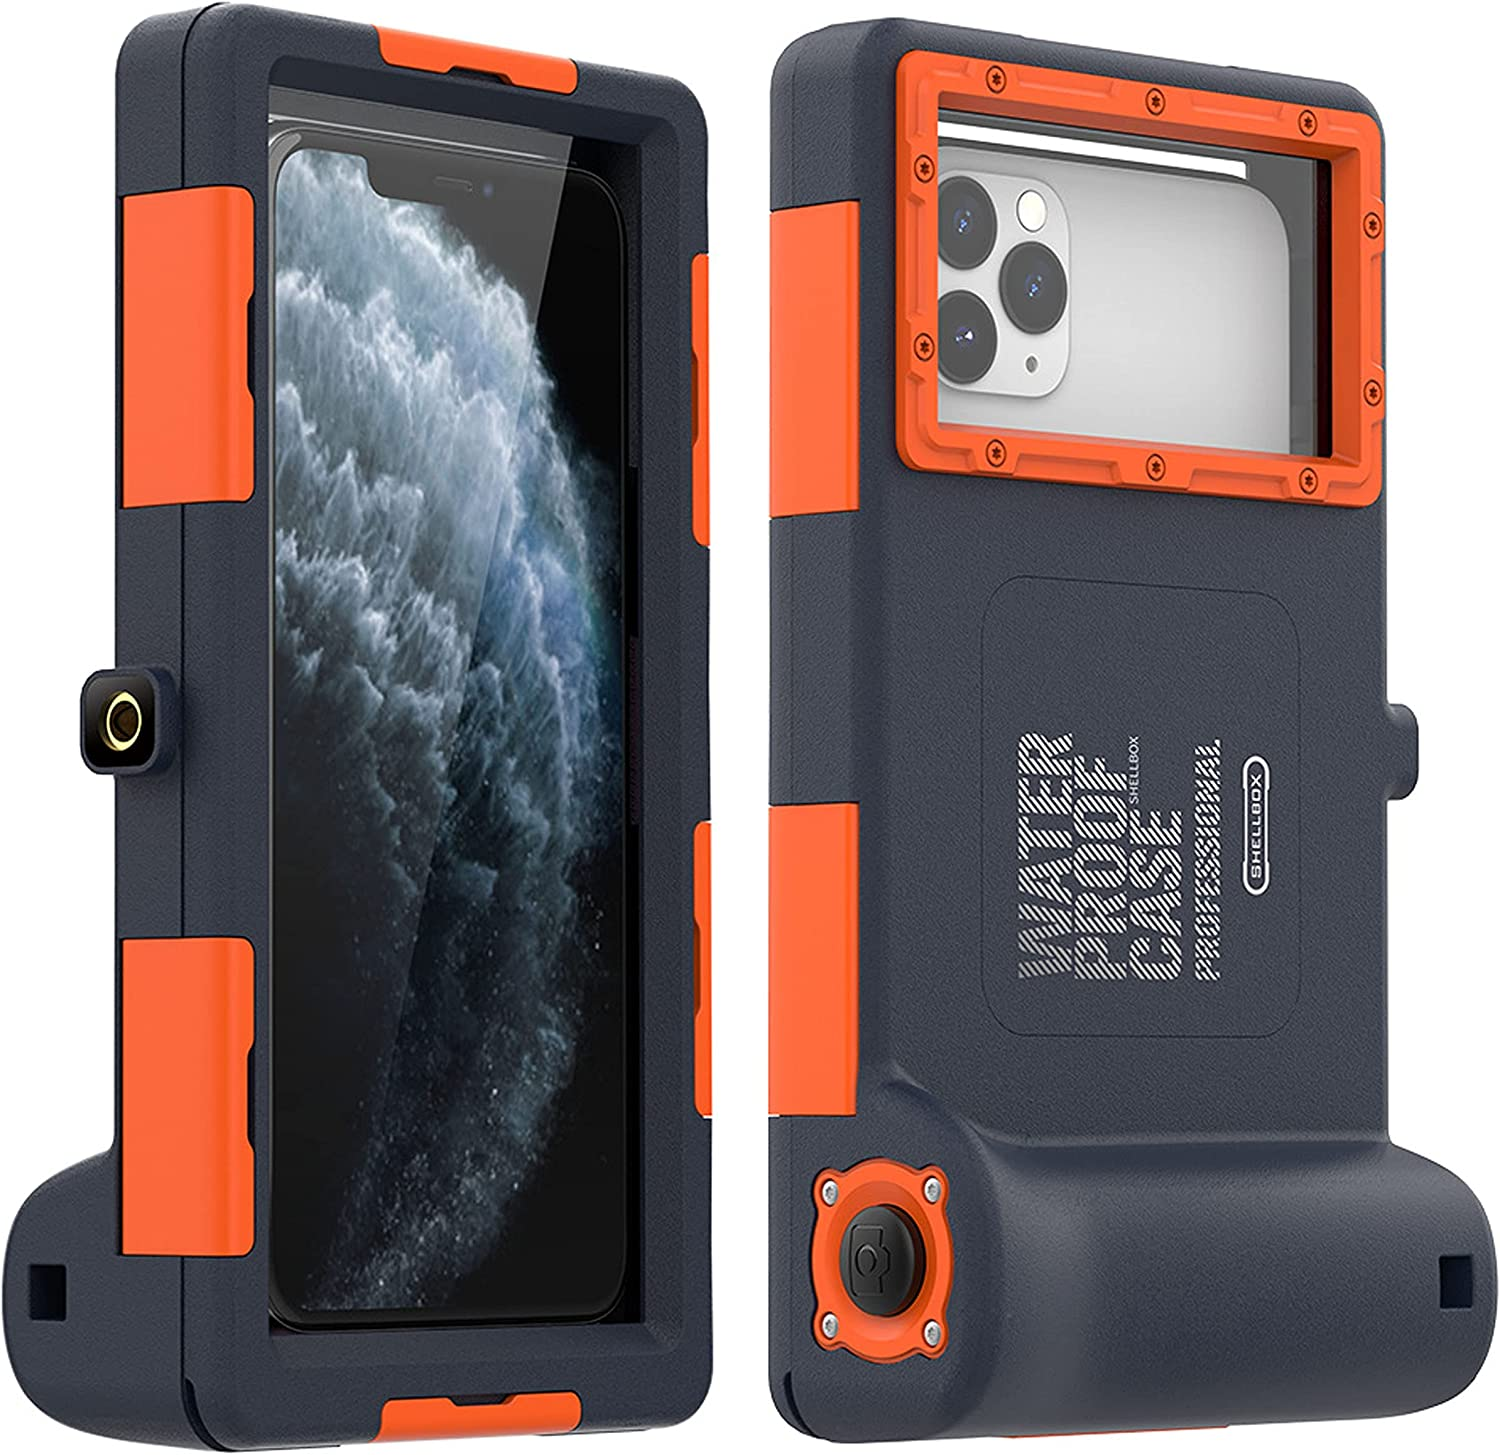 Compatible with iPhone 13/13Pro/13Pro Max/13Mini Case, Water-Resistant to 15 Meters Phone Shell, Phone Back Cover for Diving & Underwater Photography (Orange,13 Mini (5.4 inches))